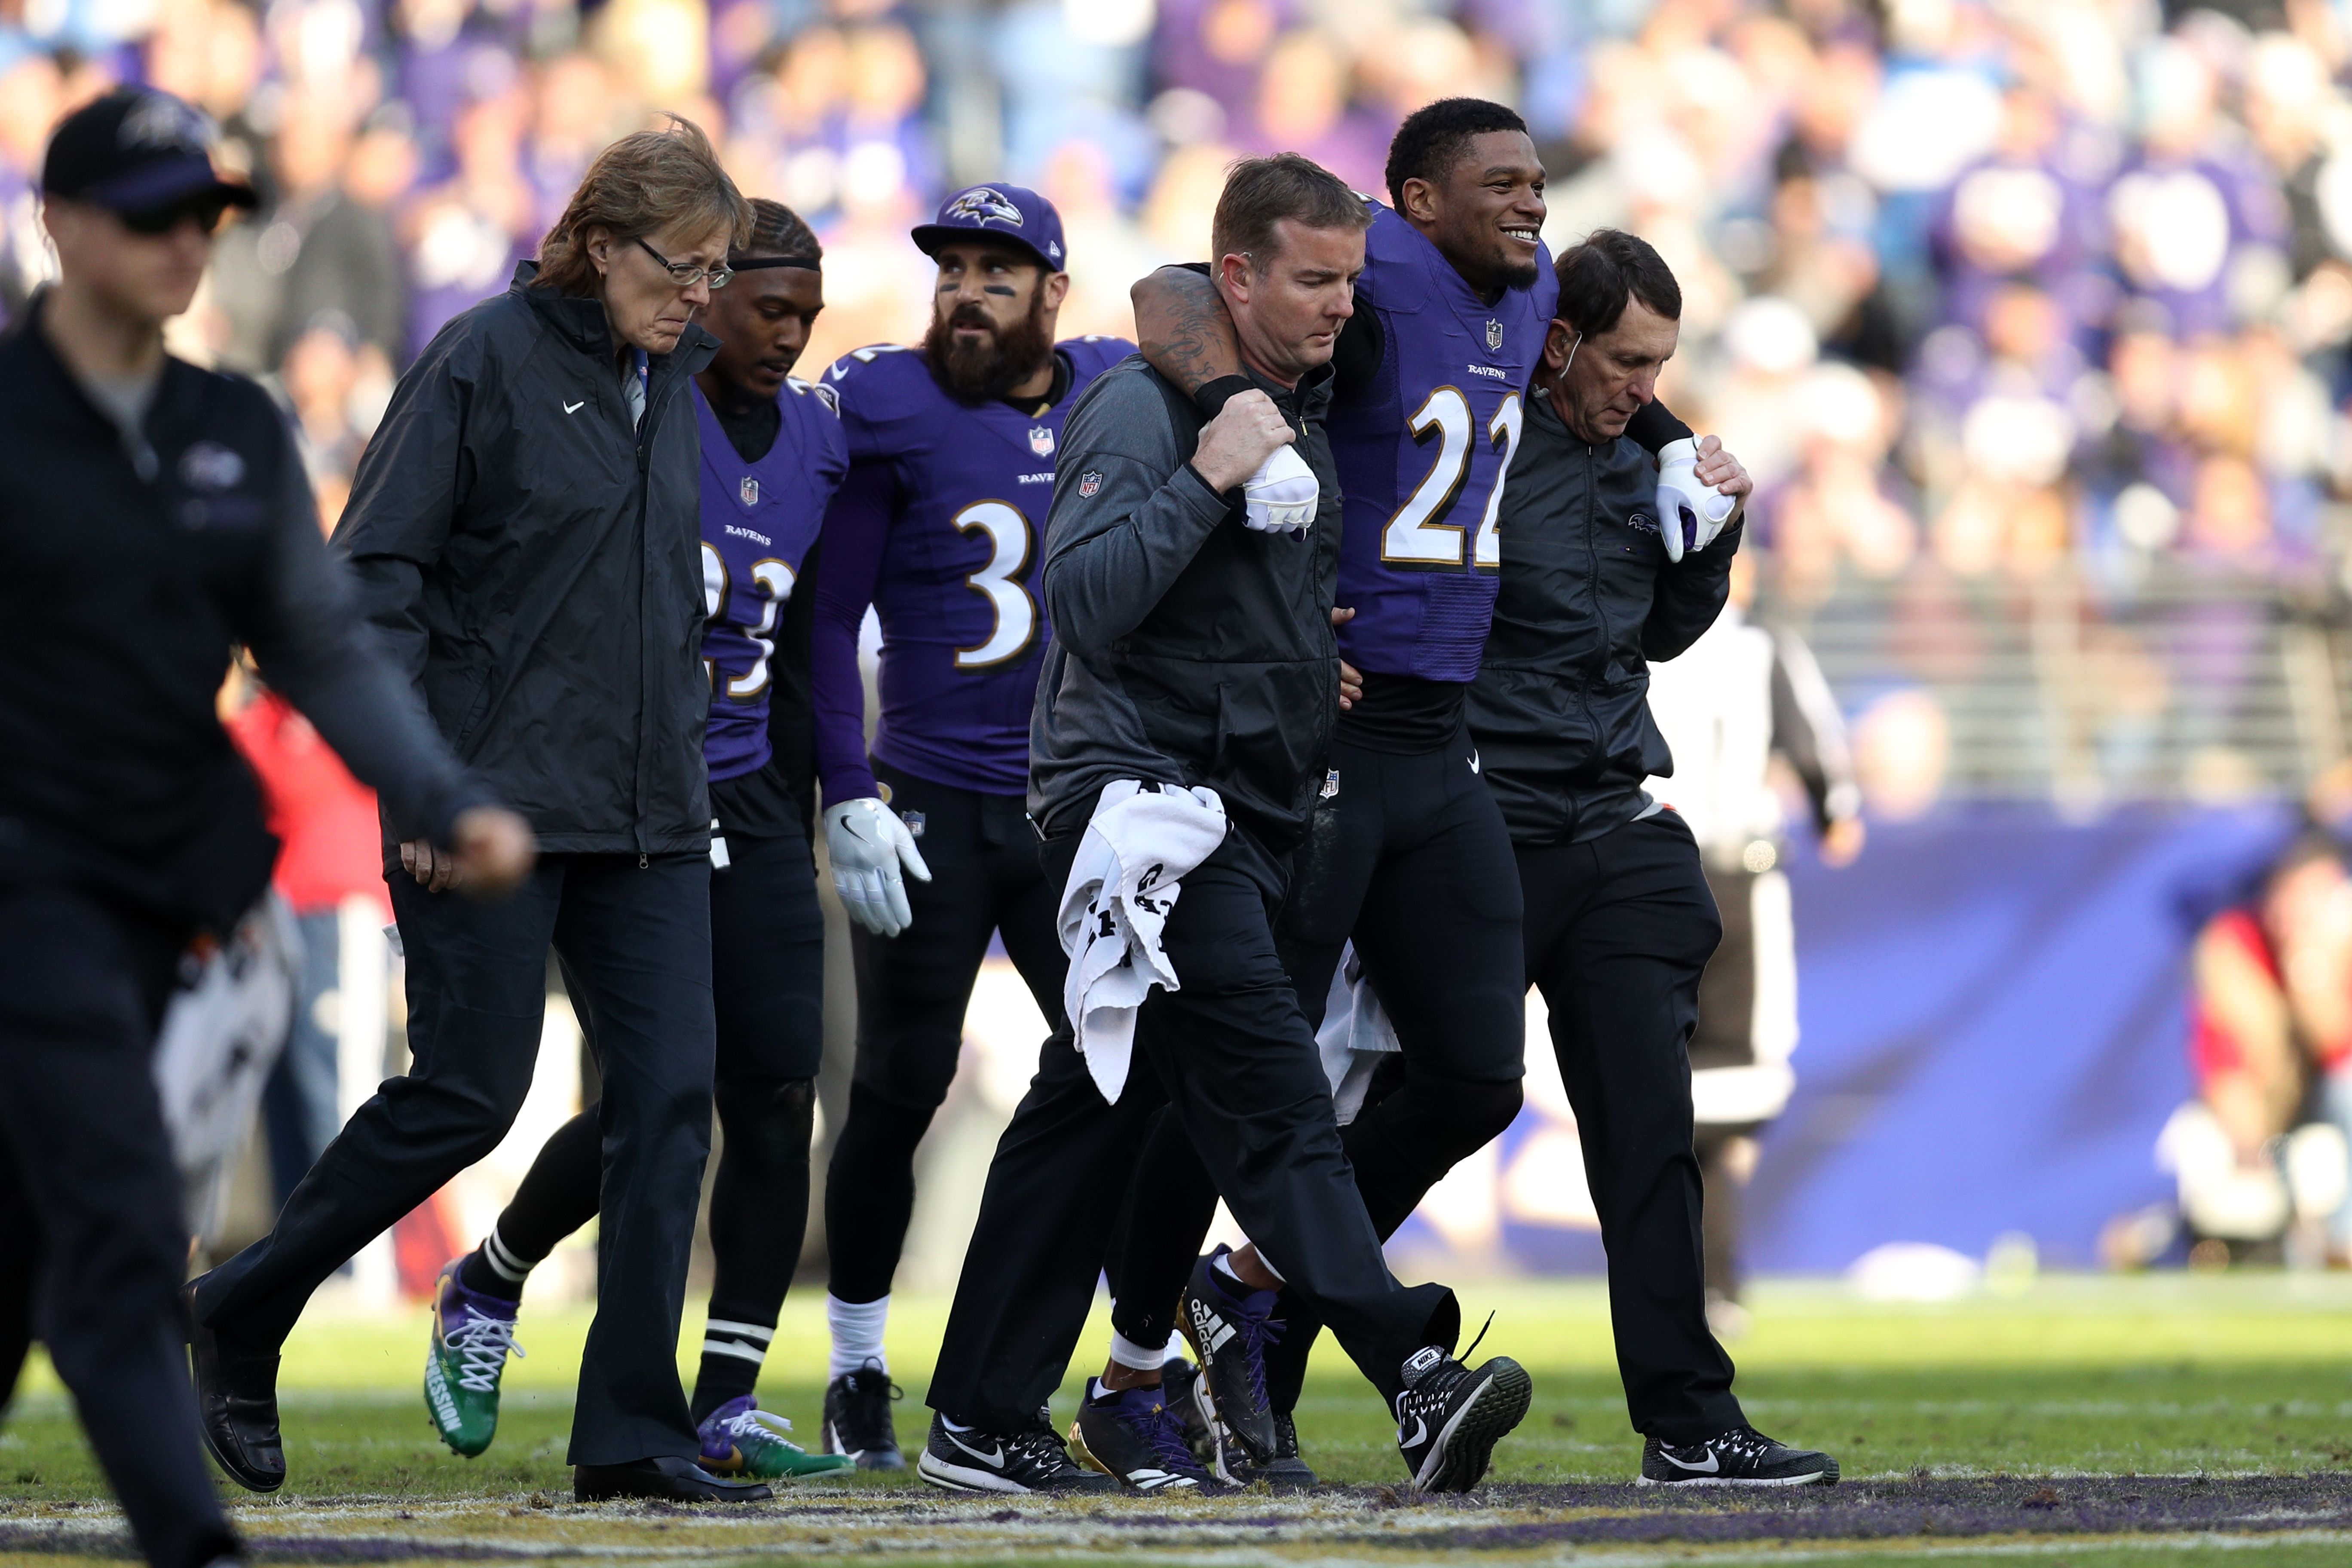 Jimmy Smith Suspended 4 Games For Performance Enhancing Substance